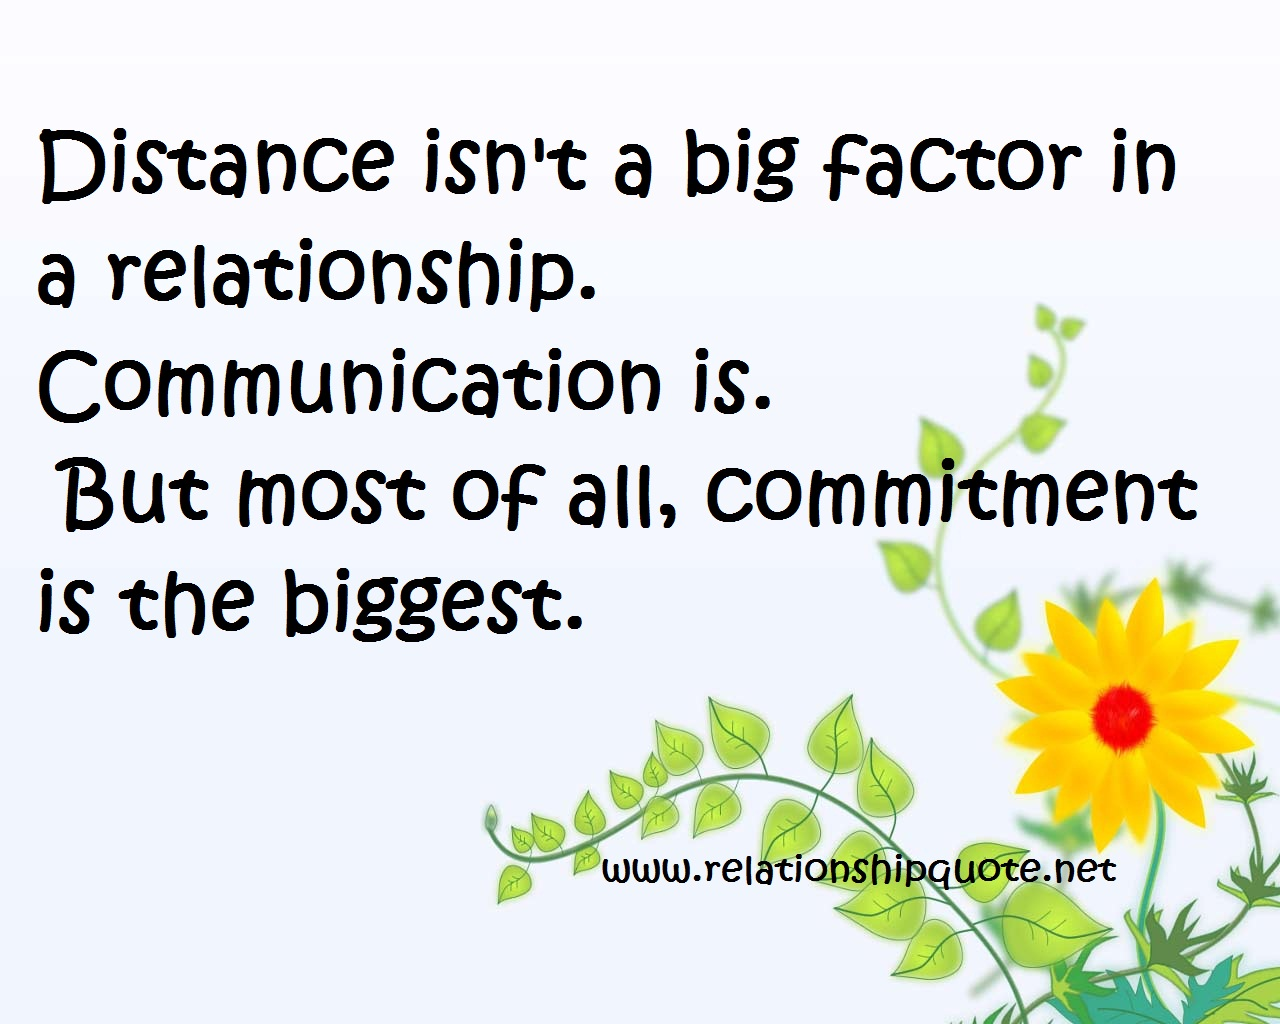 afraid of commitment in relationship quotes